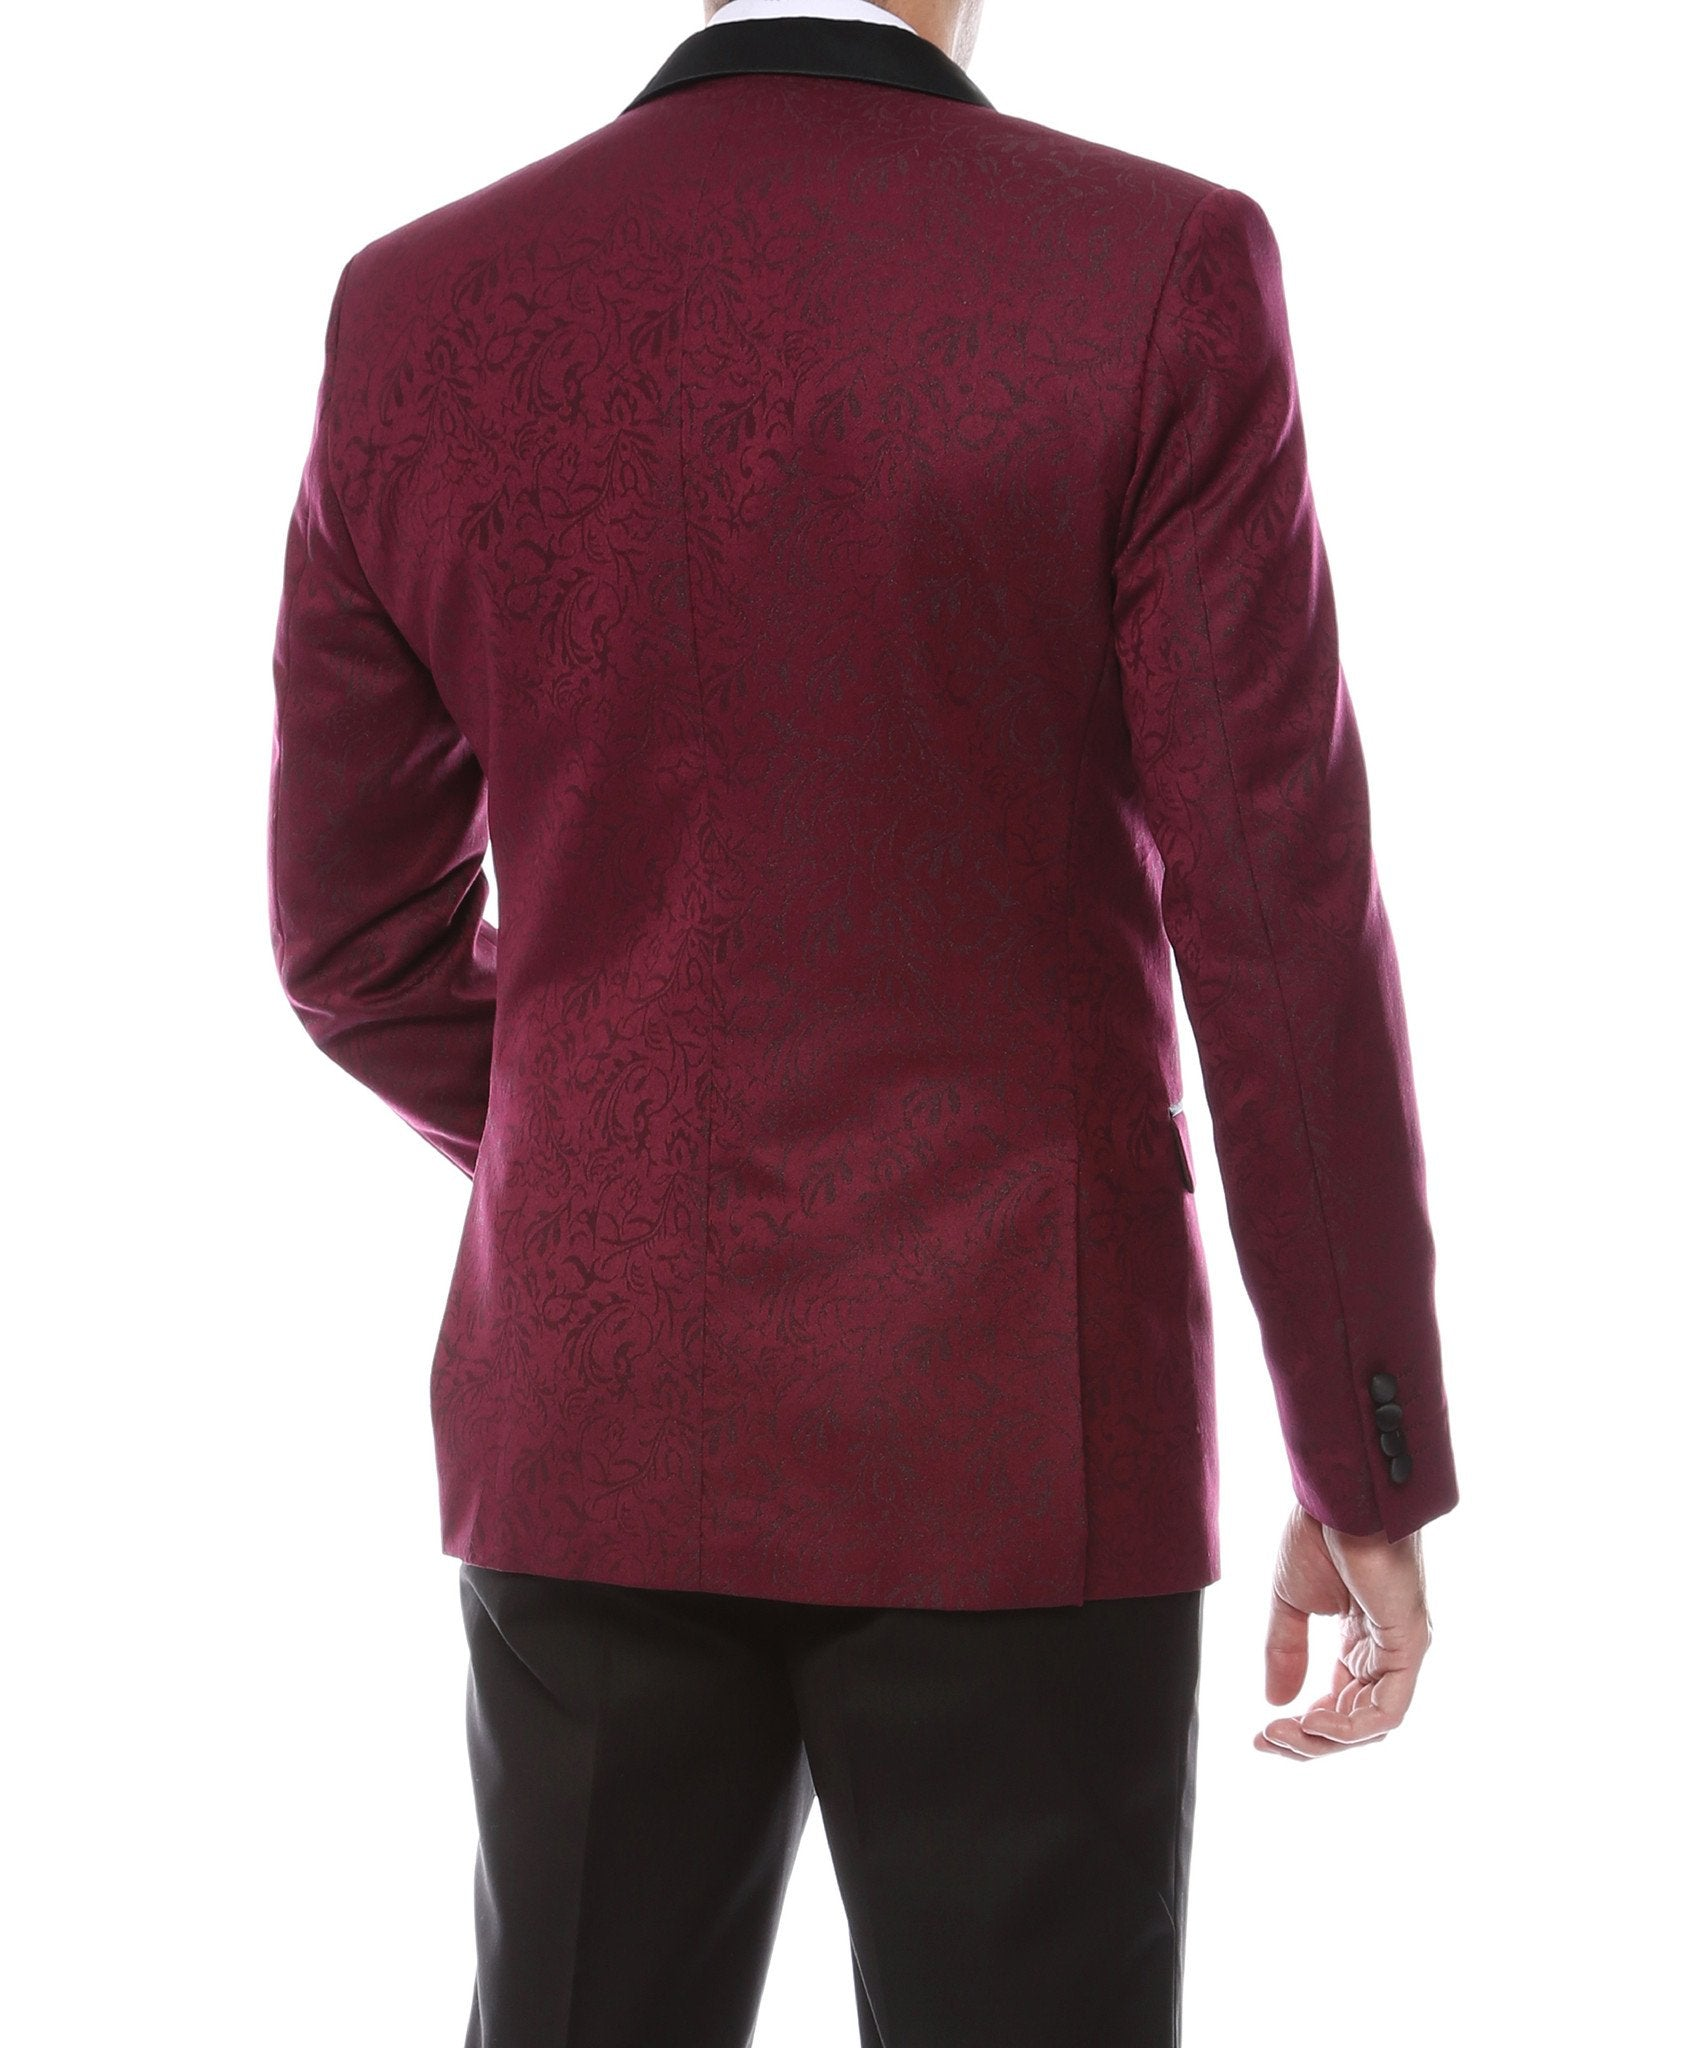 Pandora Mens Burgundy Tapestry Super Slim Fit Notch Lapel Tuxedo Blazer - Giorgio's Menswear